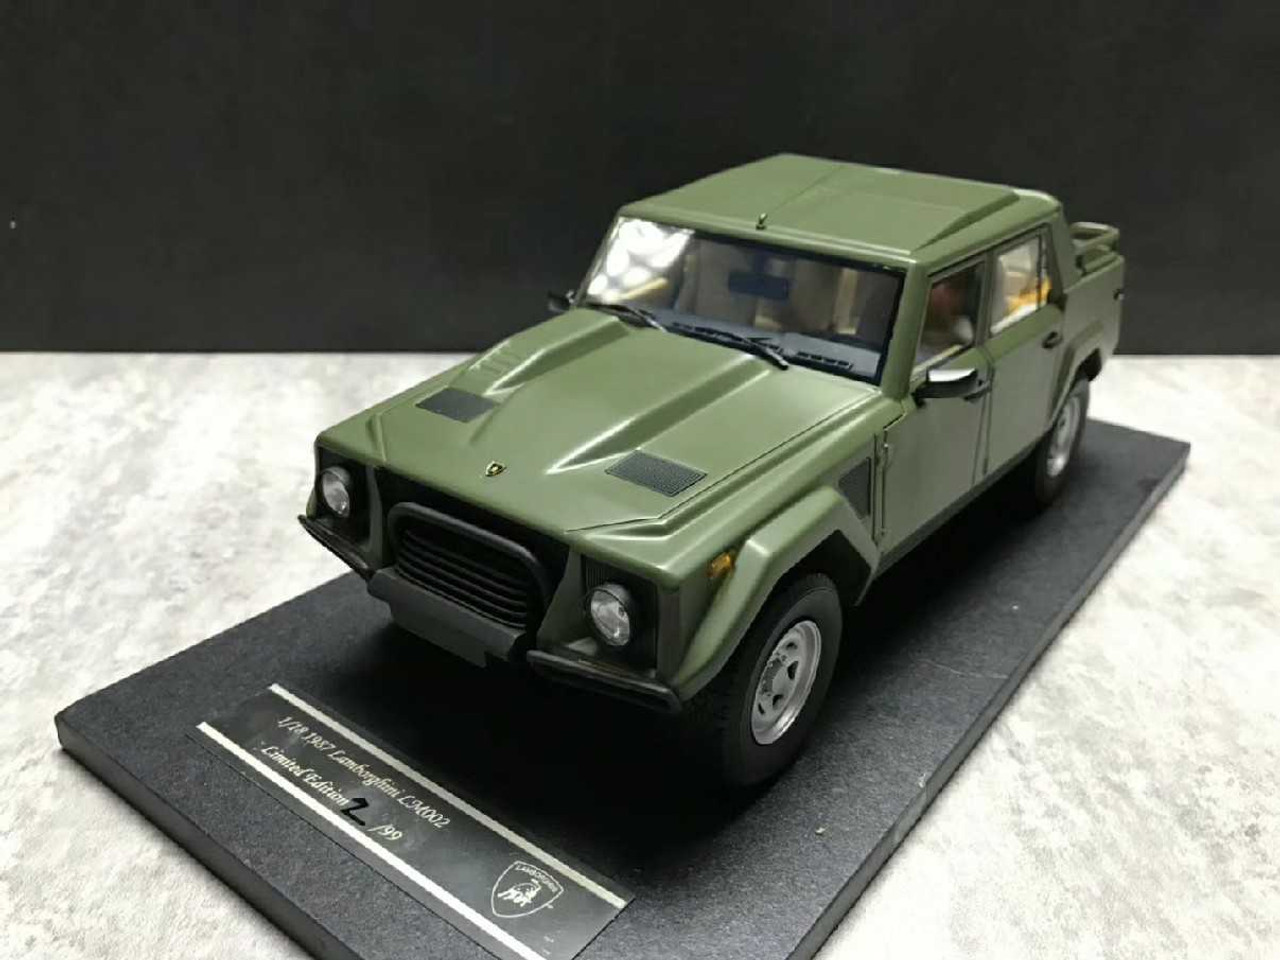 1/18 Handmade Resin Lamborghini LM002 (Green) Car Model